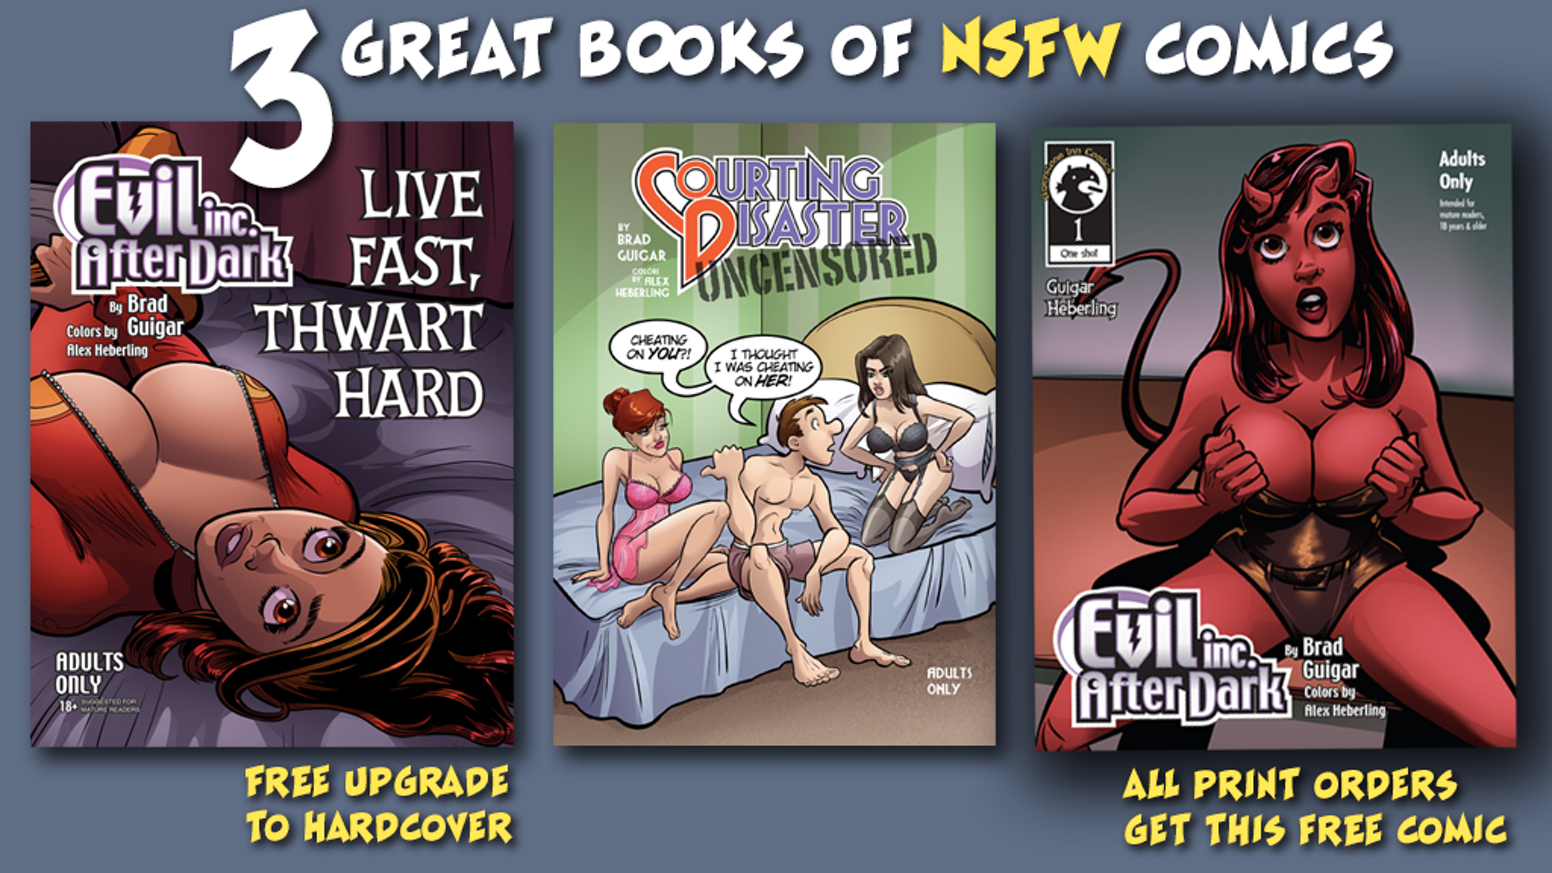 """TWO great print collections! The smutty supervillain series """"Evil Inc After Dark"""" and the risque relationship romp """"Courting Disaster""""!"""